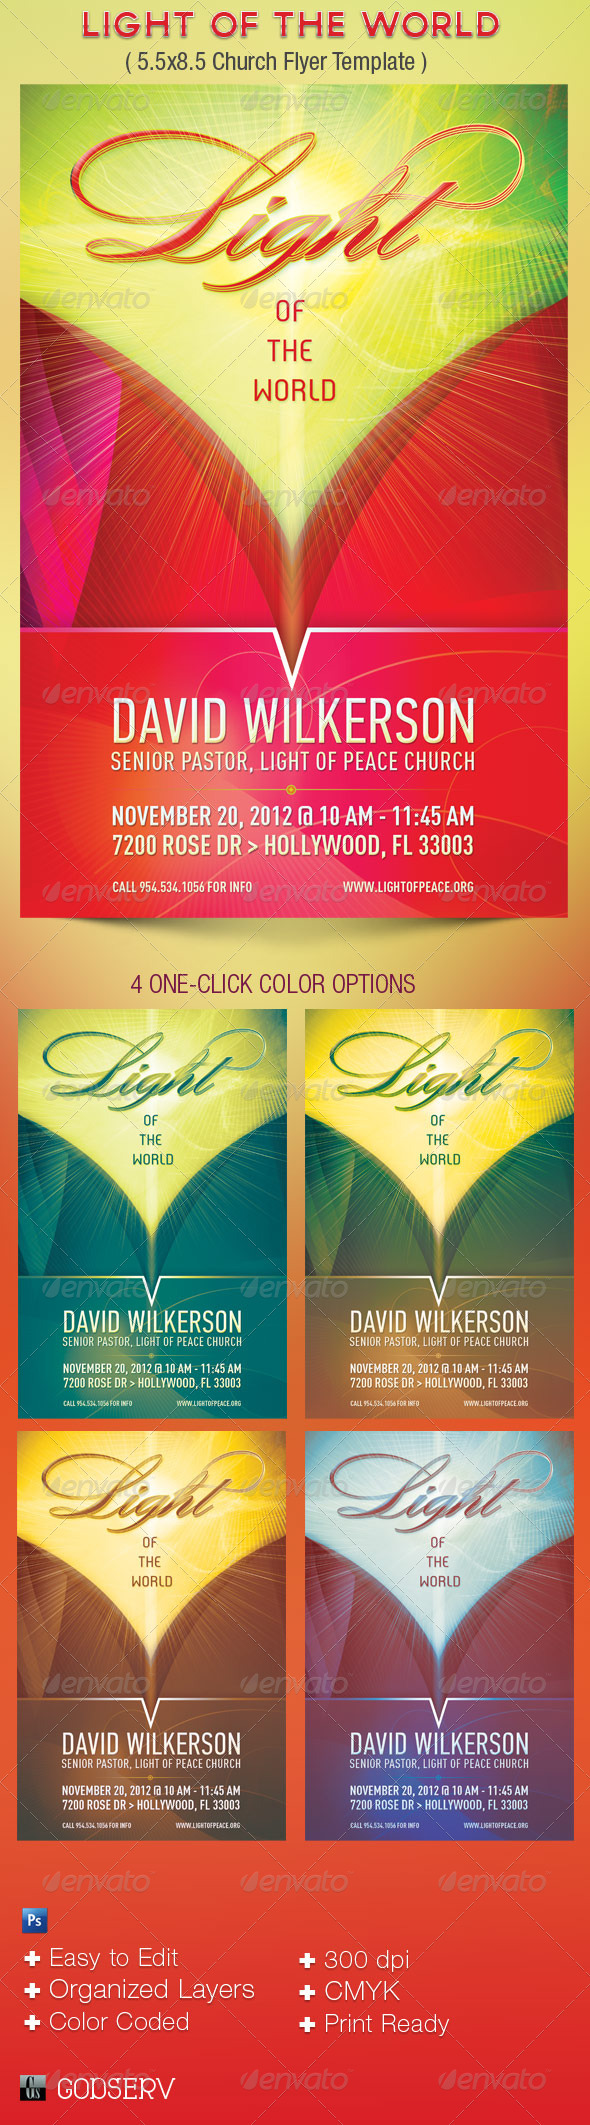 Light of The World Church Flyer Template - Church Flyers